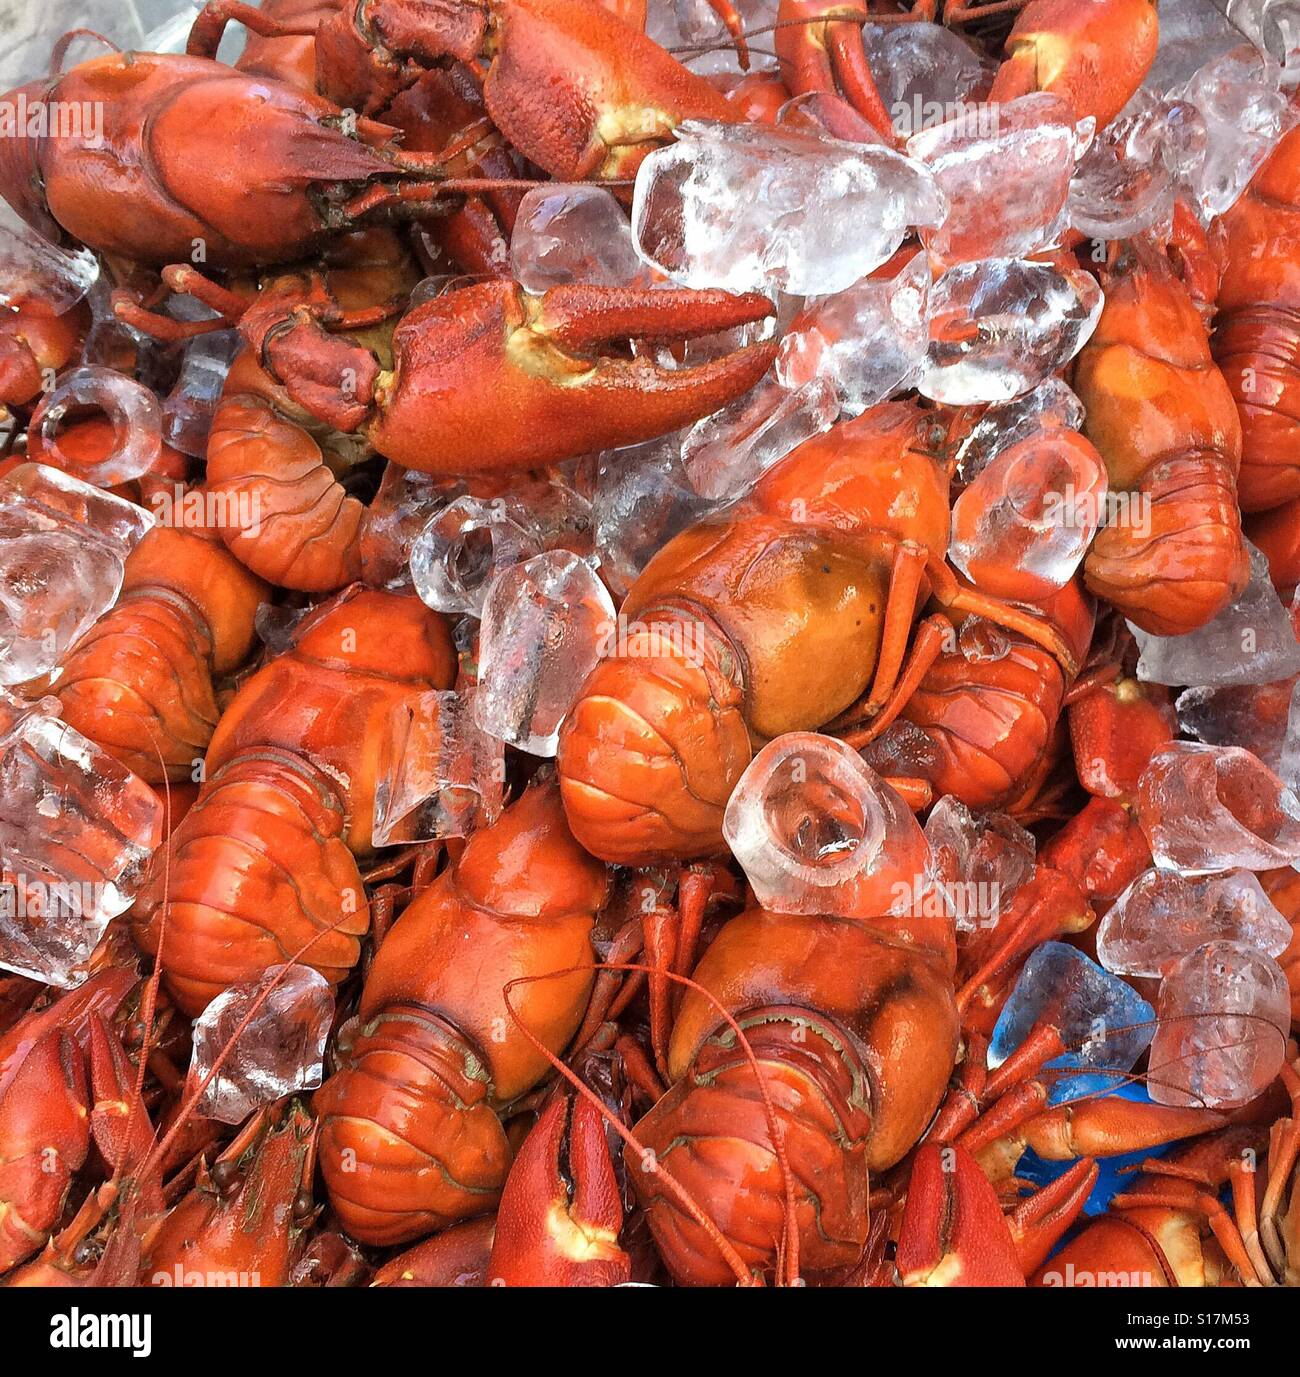 Crayfish on ice for sale at a local market - Stock Image